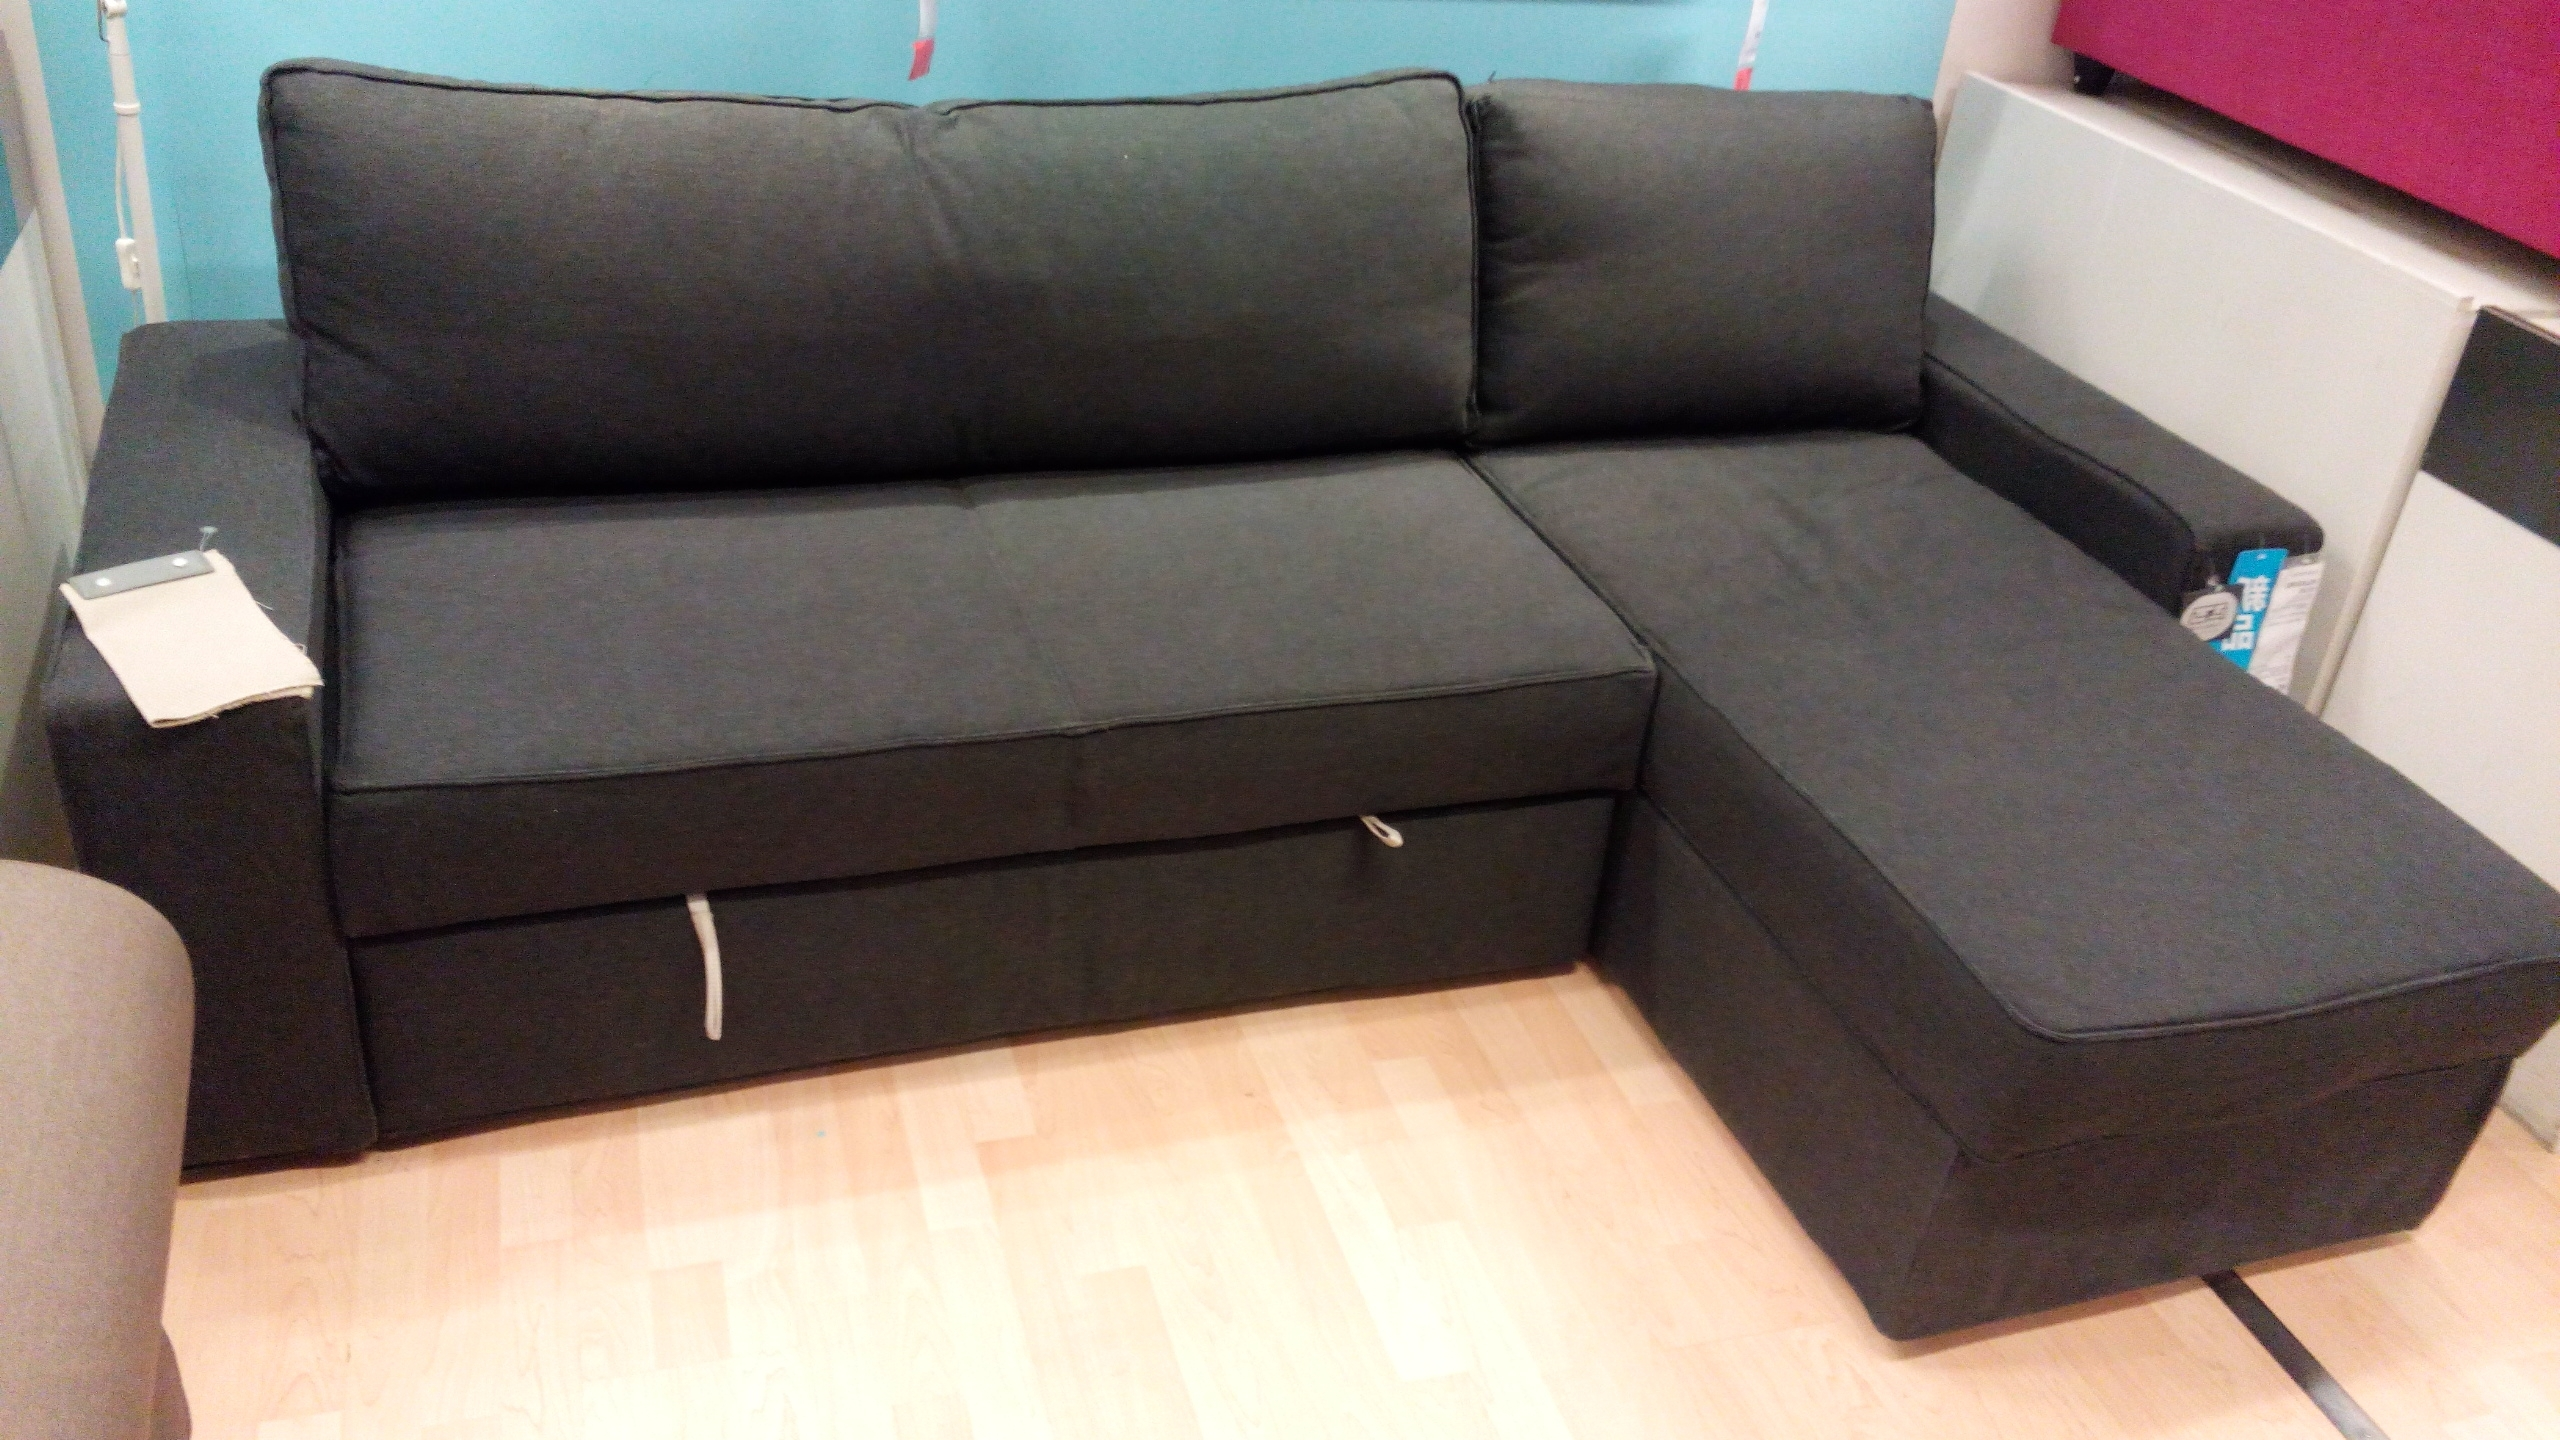 Ikea Vilasund And Backabro Review - Return Of The Sofa Bed Clones! with regard to Favorite Ikea Sofa Beds With Chaise